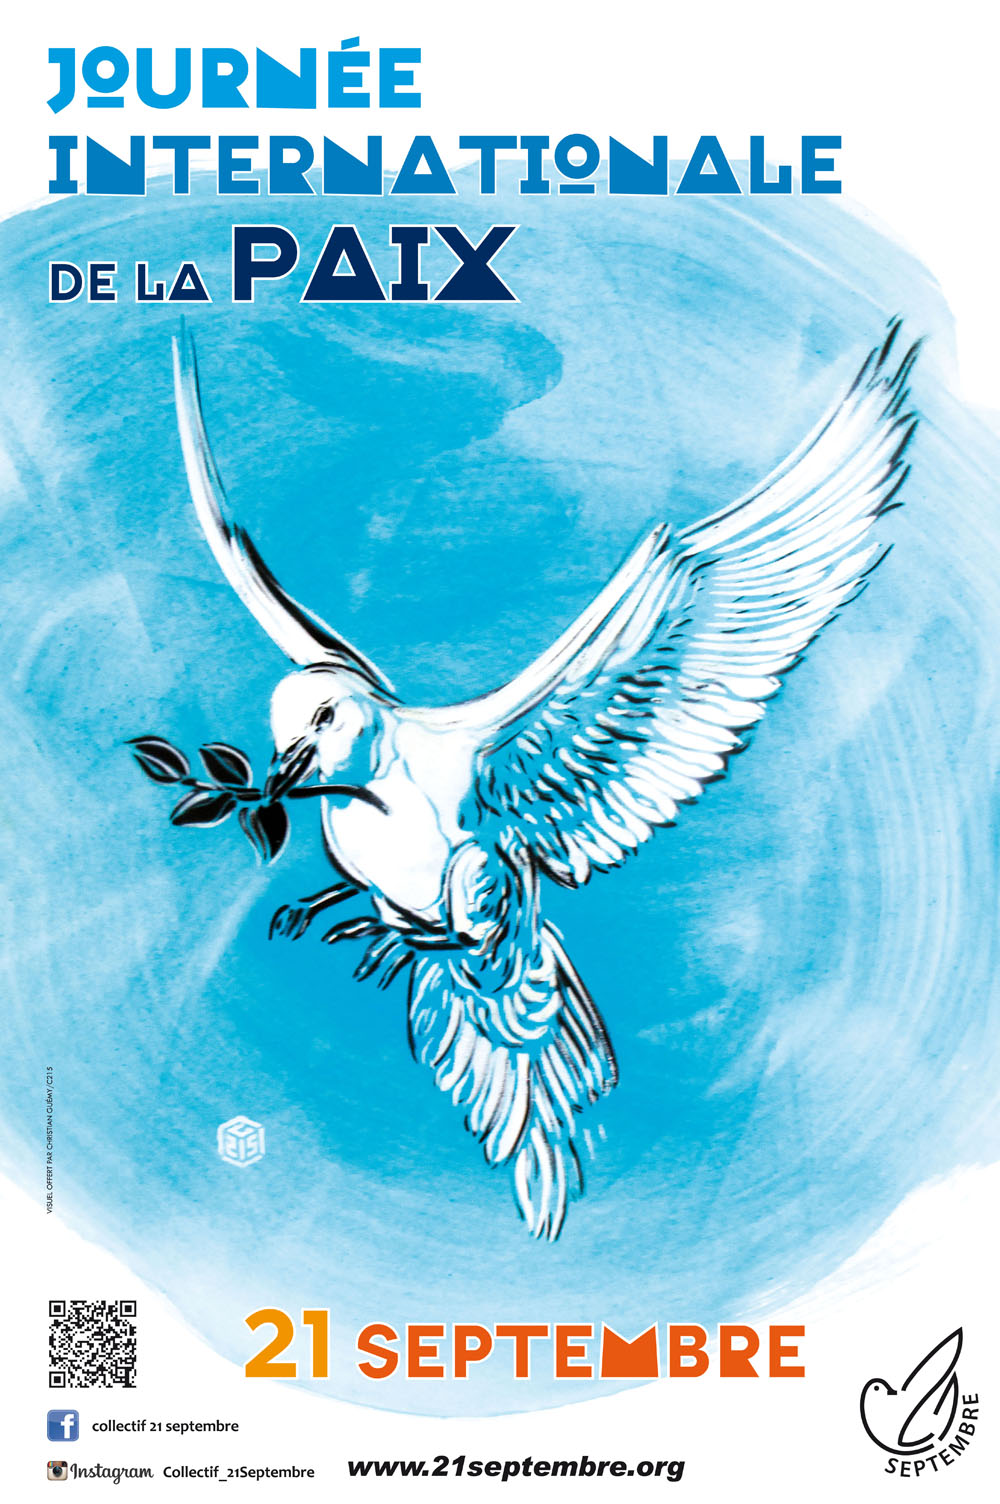 L'affiche de la Journée internationale de la Paix 2016